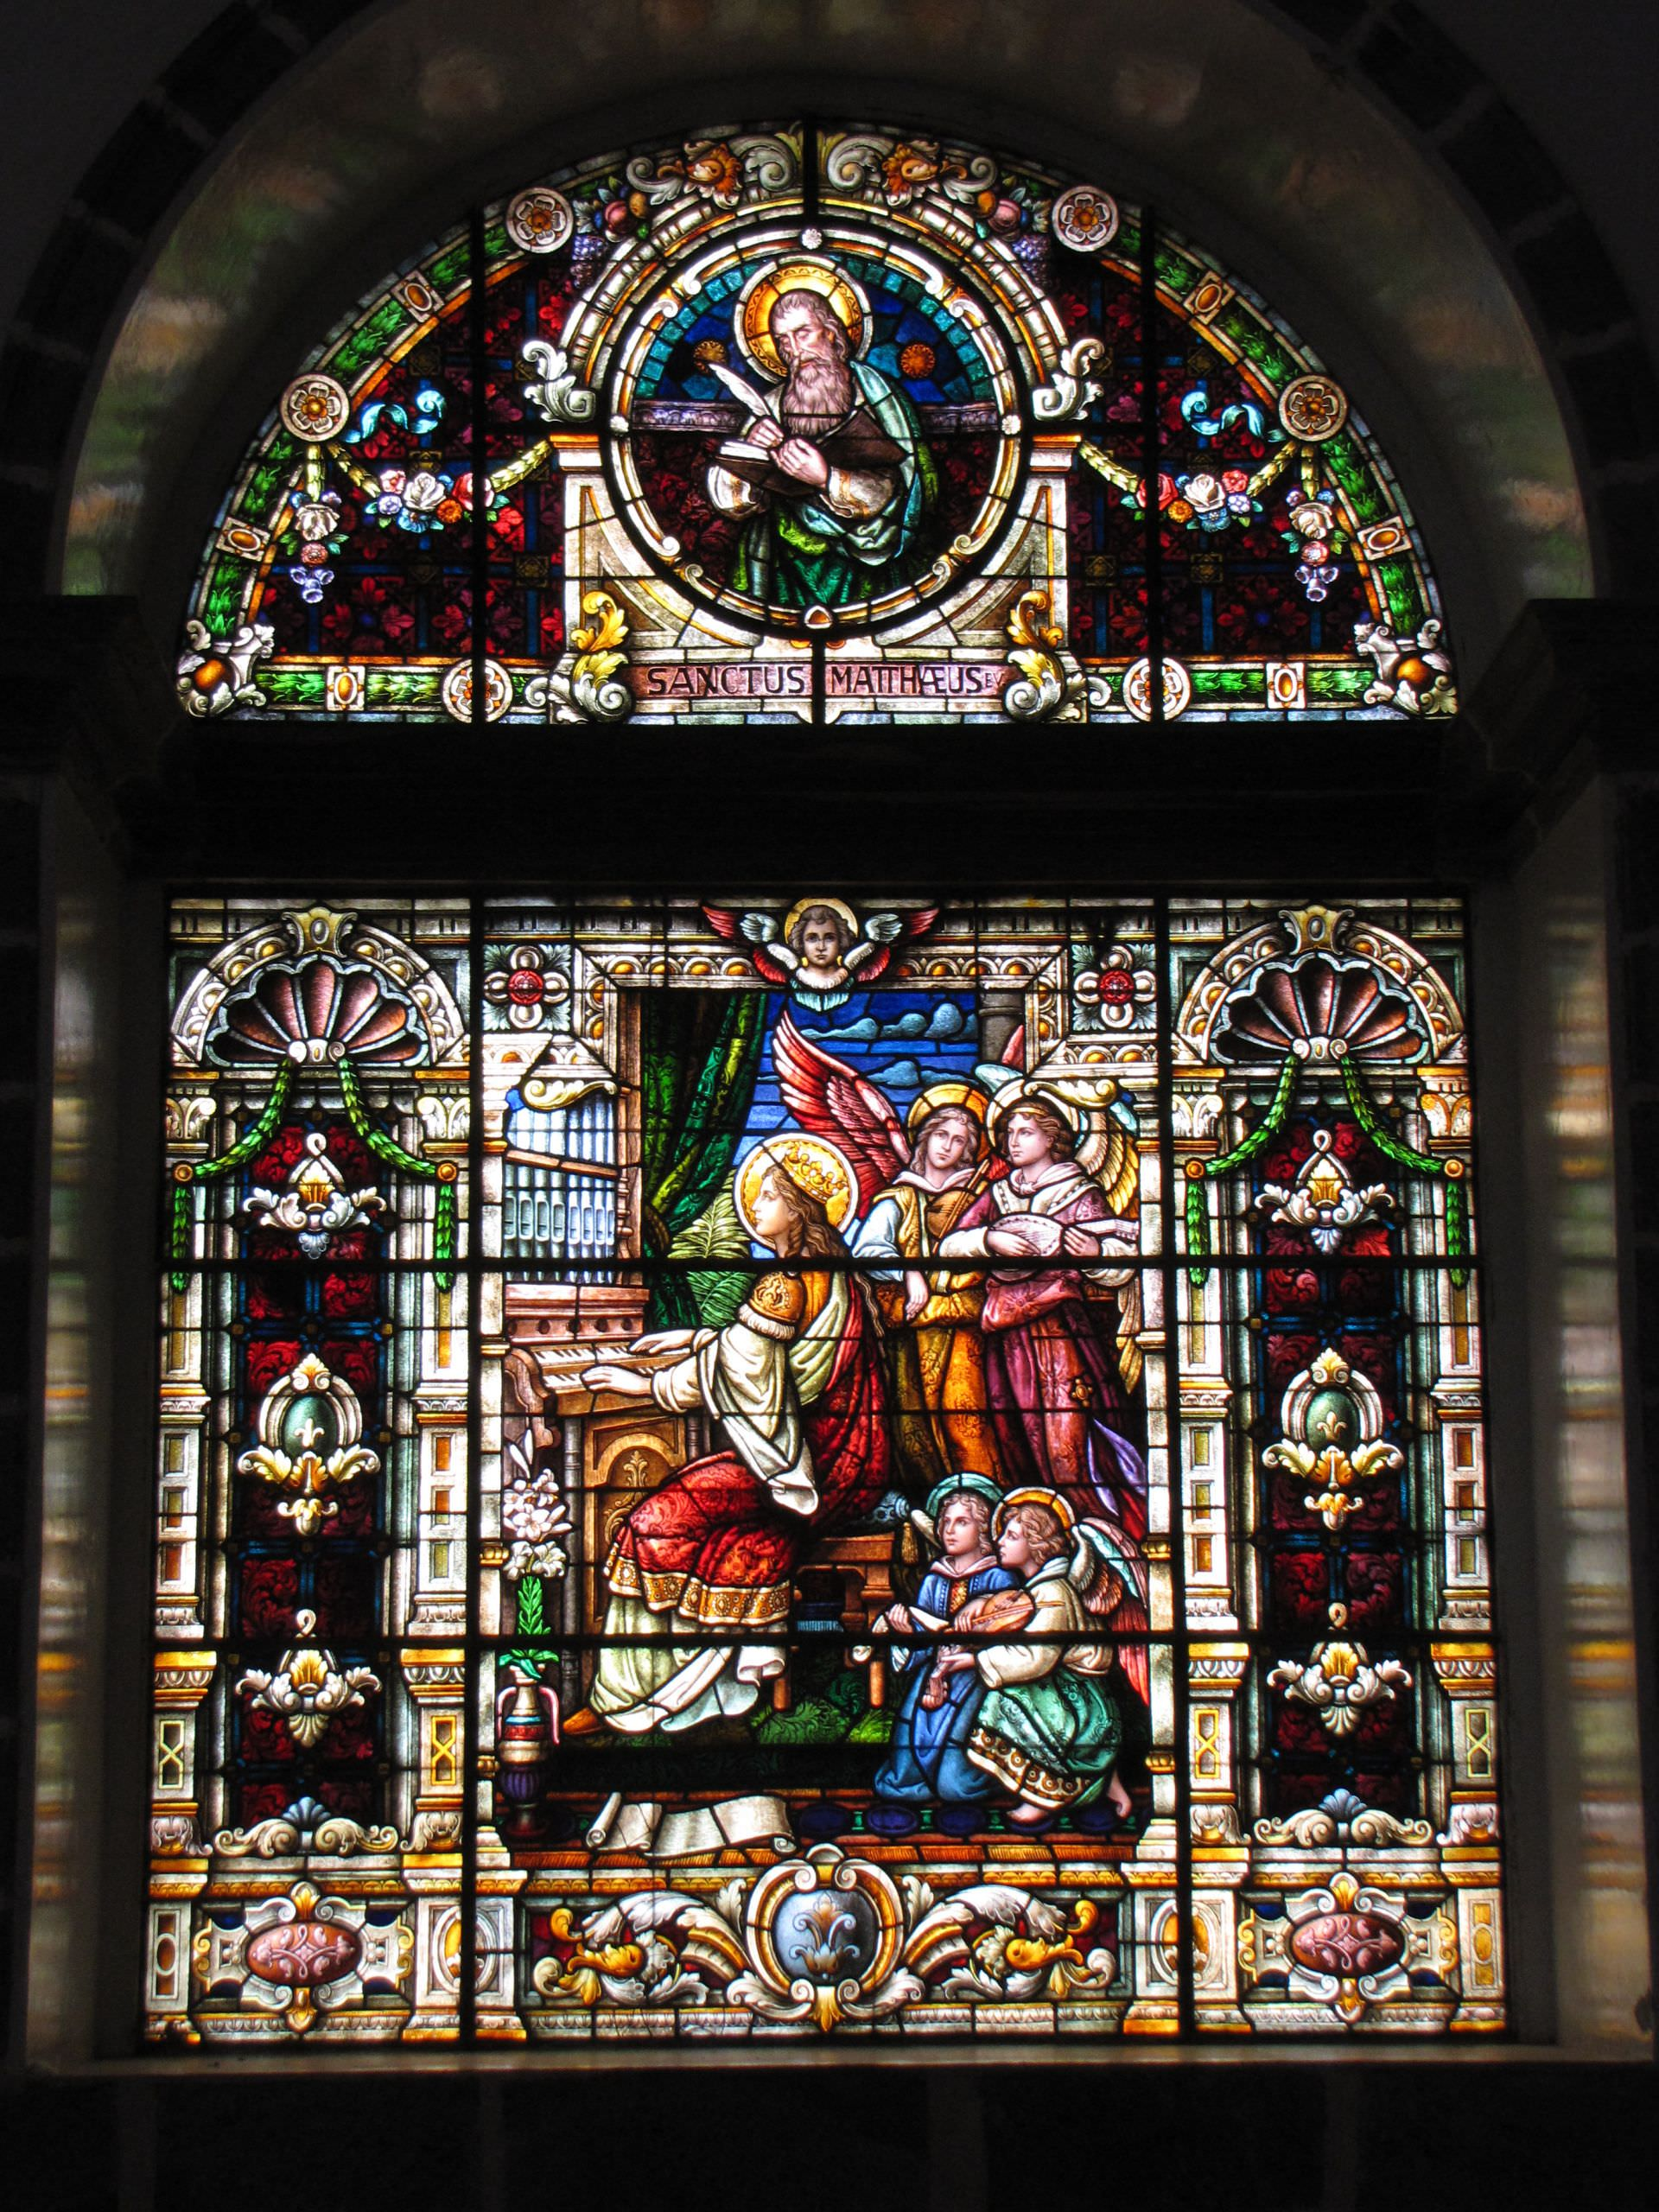 light, organ, music, art, stained glass, angeles, mateo, sacred, evangelist, saints, cecilia, women, holy